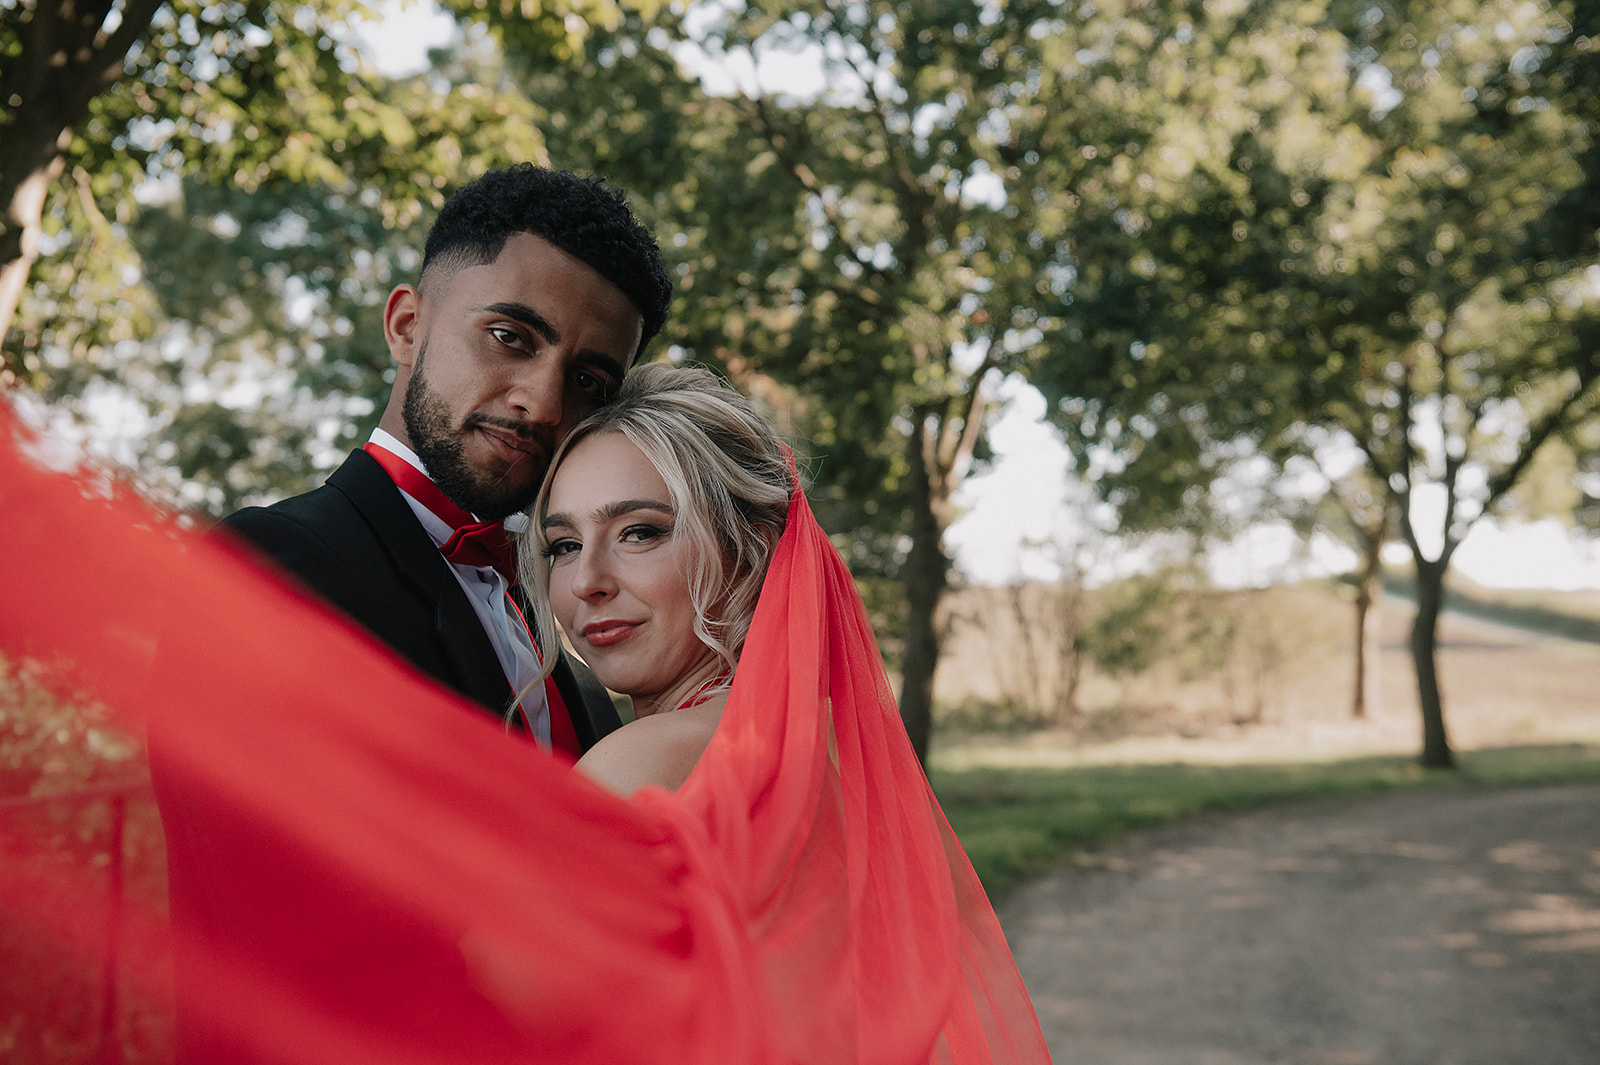 red wedding - forest elopement photoshoot - red wedding veil - red bowtie - red wedding colour scheme